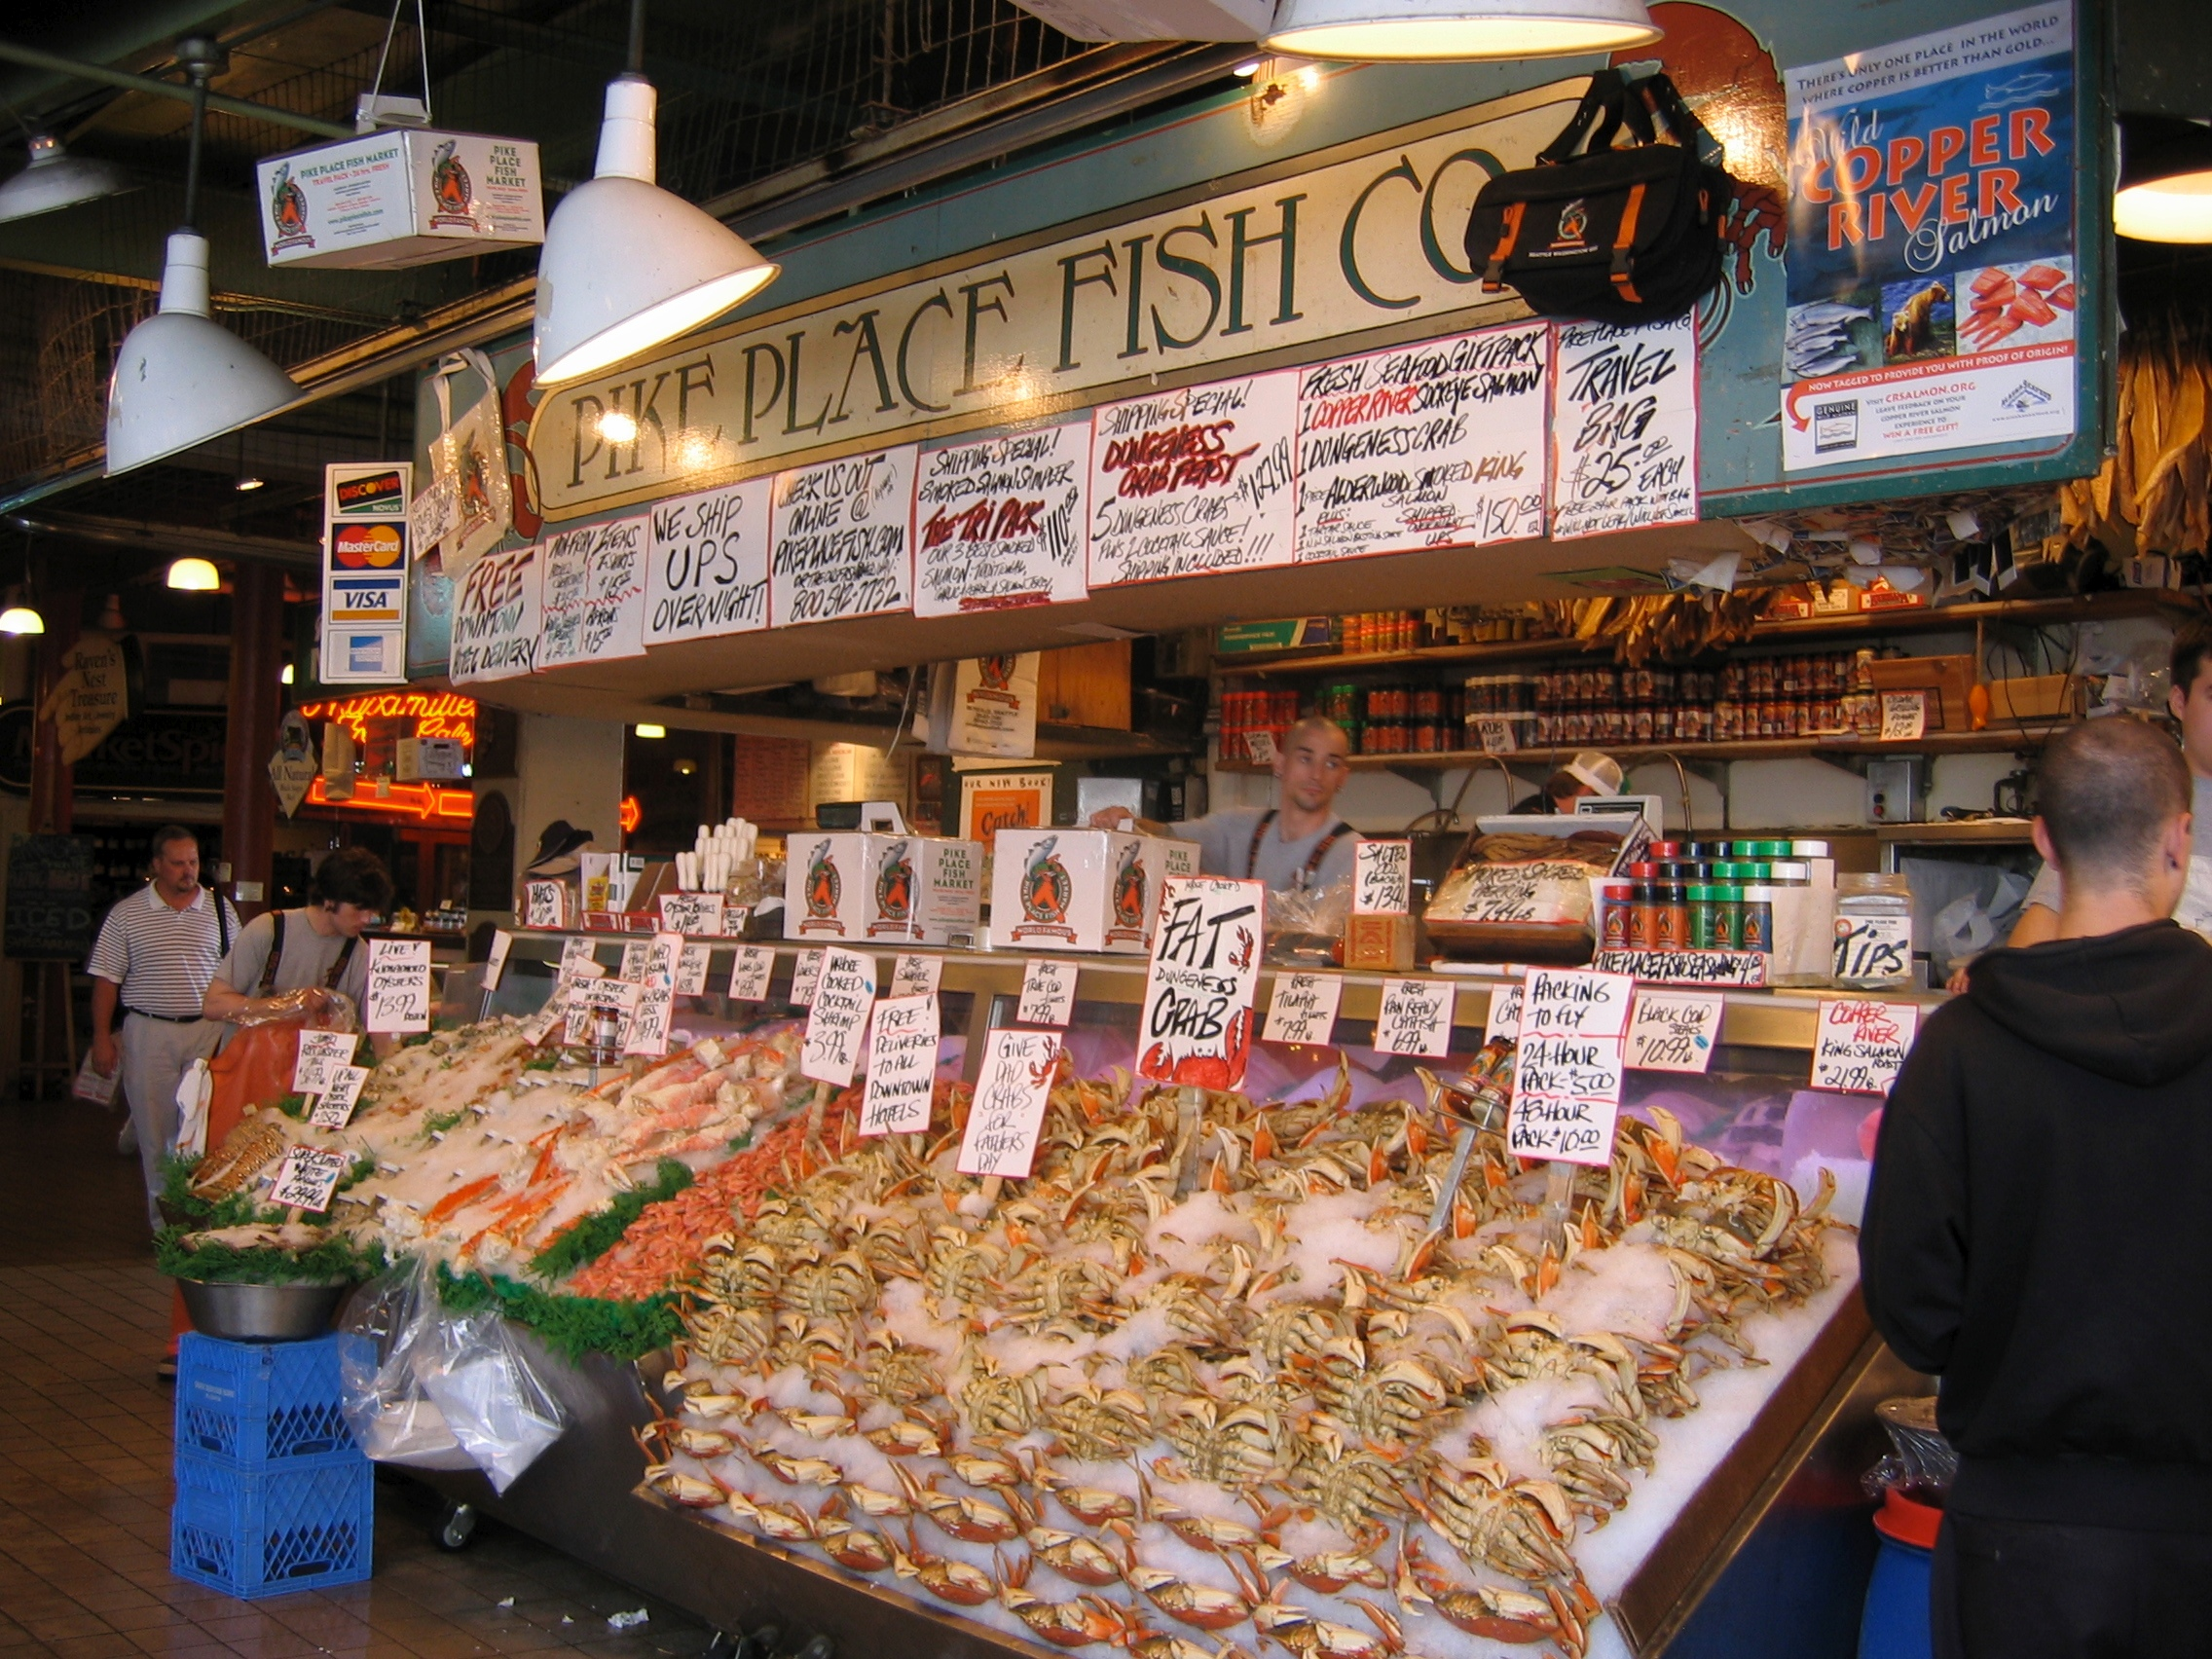 Pike Place Fish 1.jpg